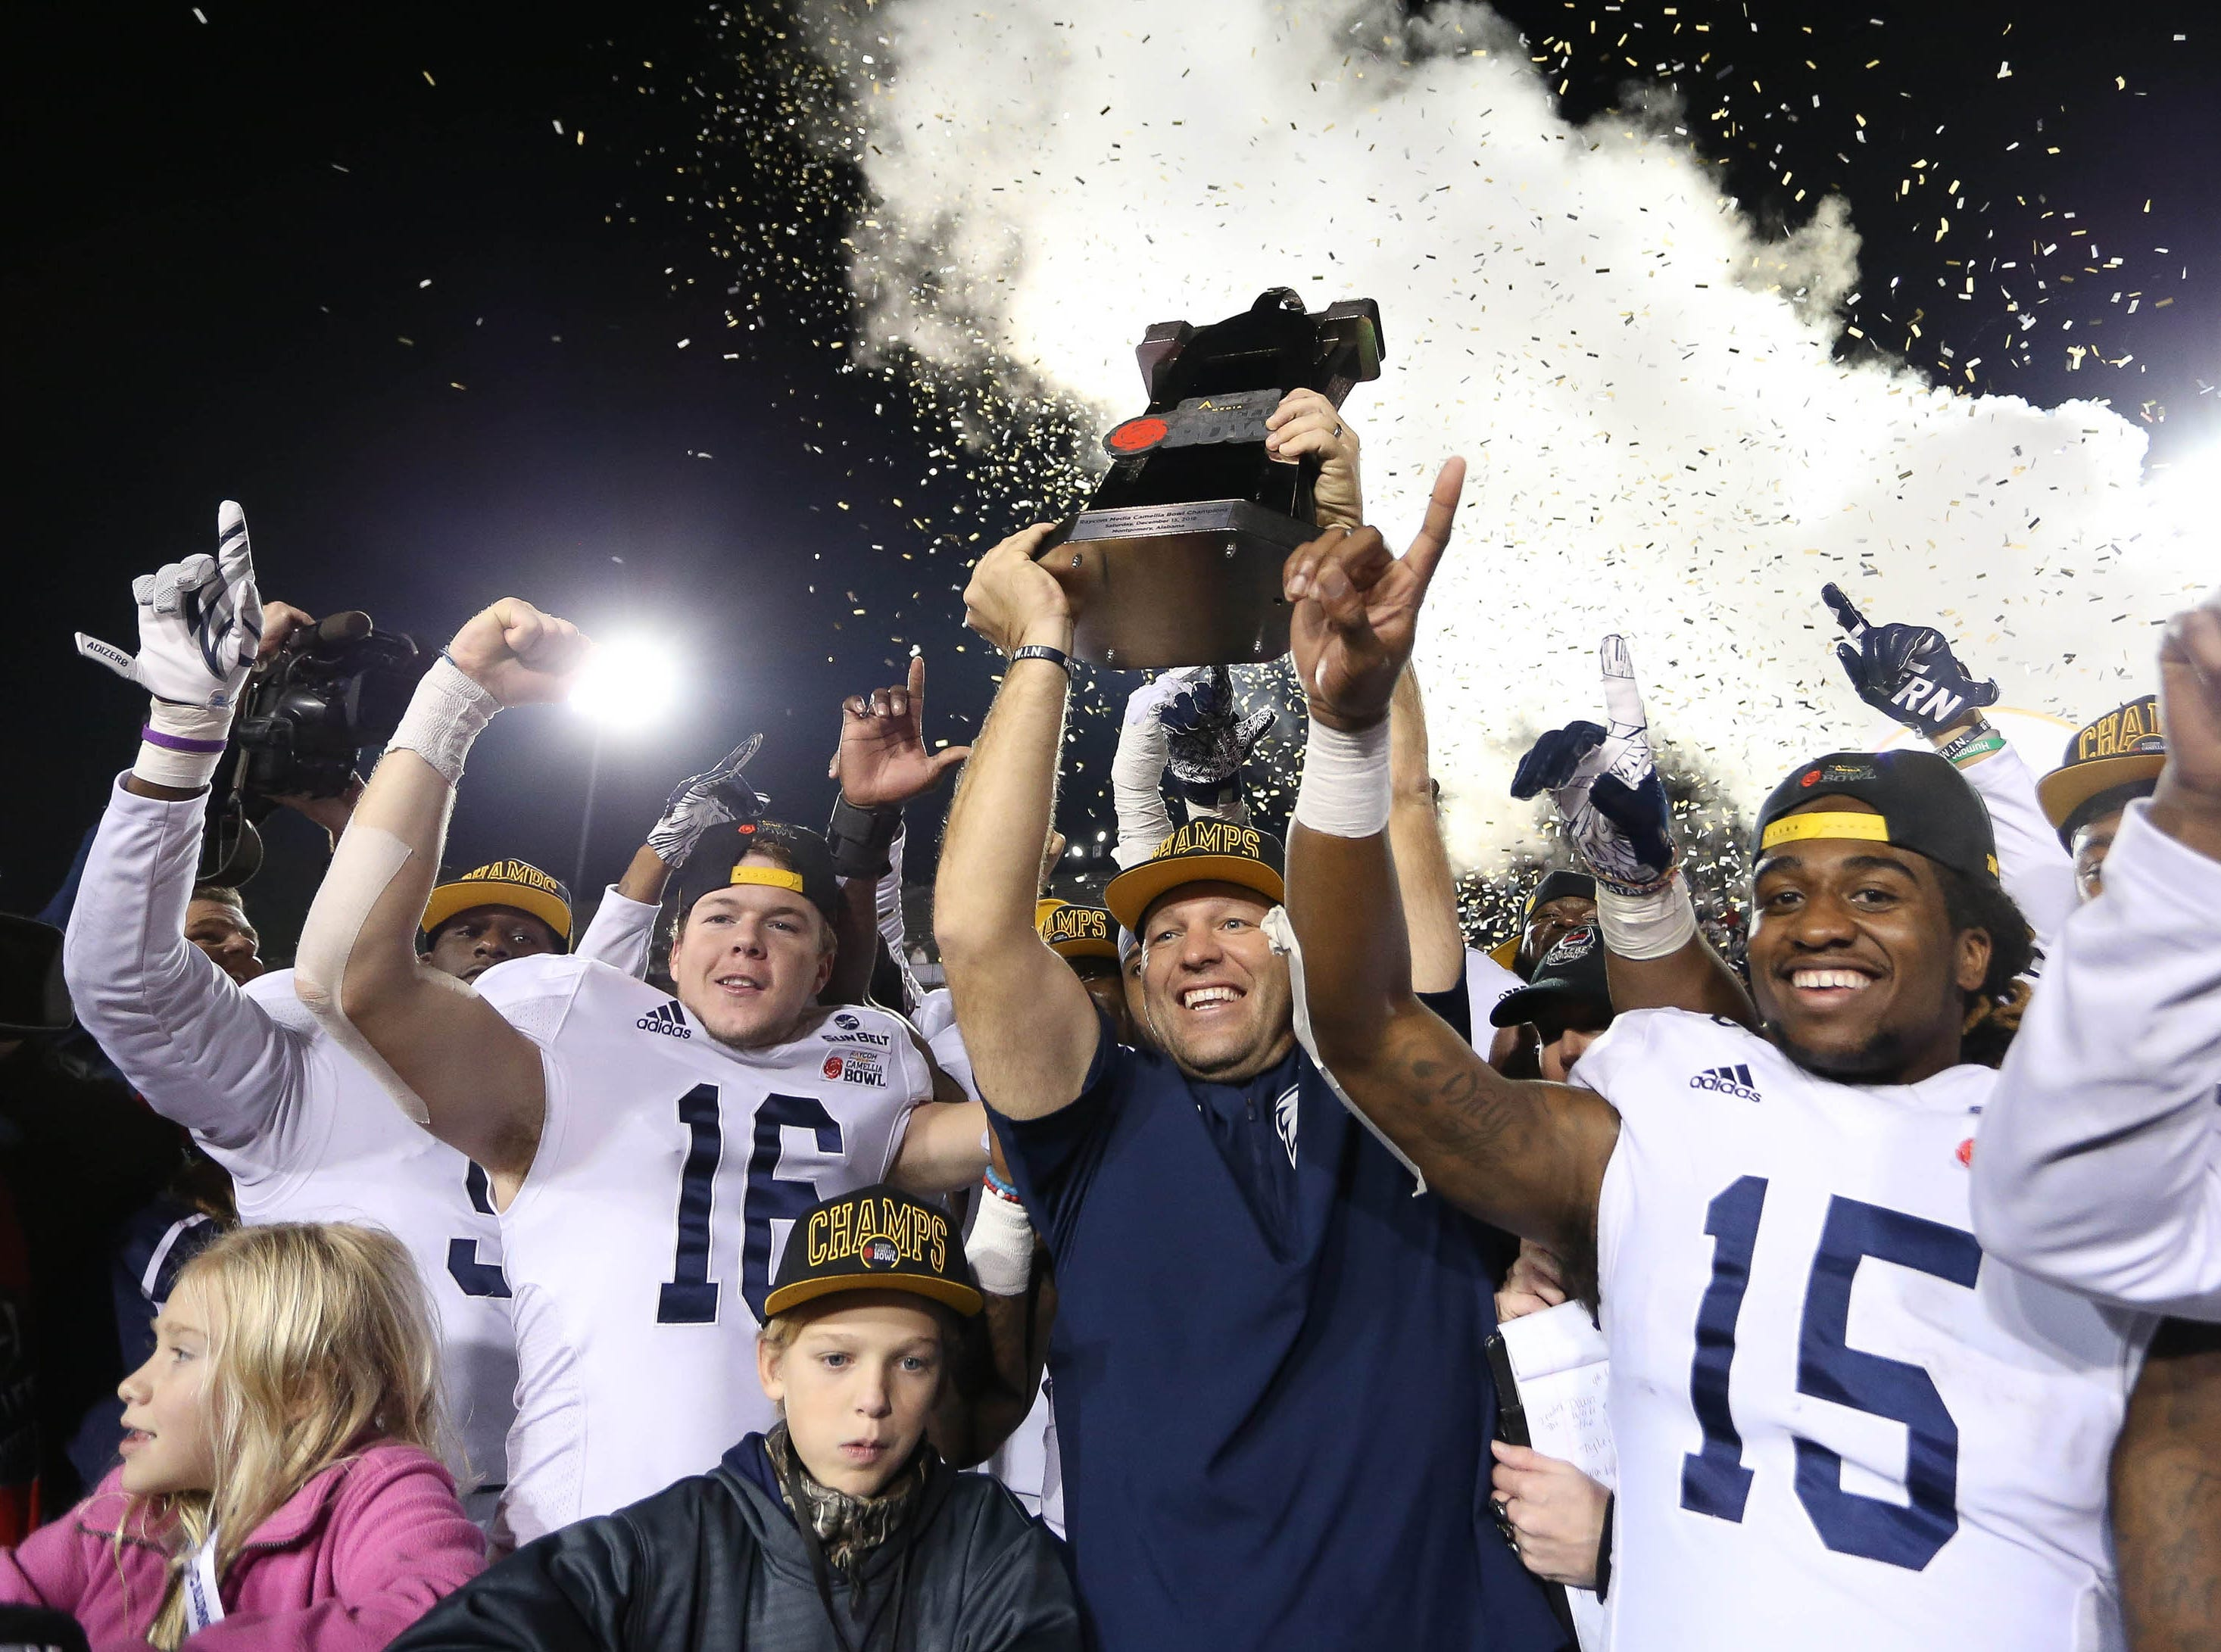 Georgia Southern Eagles head coach Chad Lunsford receives the Camellia Bowl trophy after defeating the Eastern Michigan Eagles.